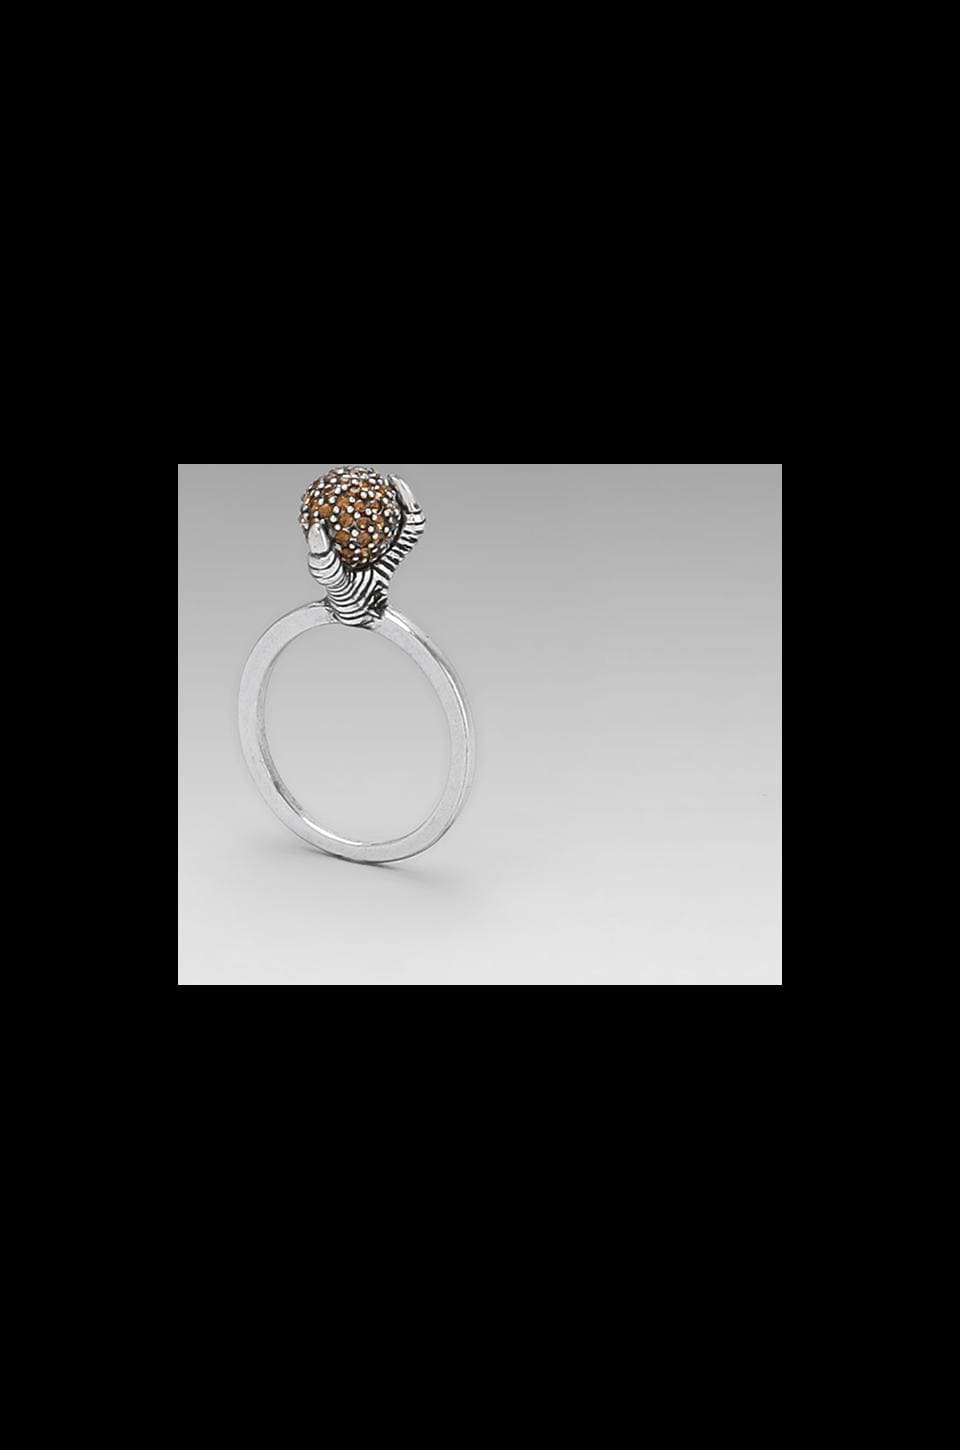 House of Harlow Talon Crystal Ring in Palladium with Dorado Crystal Pave